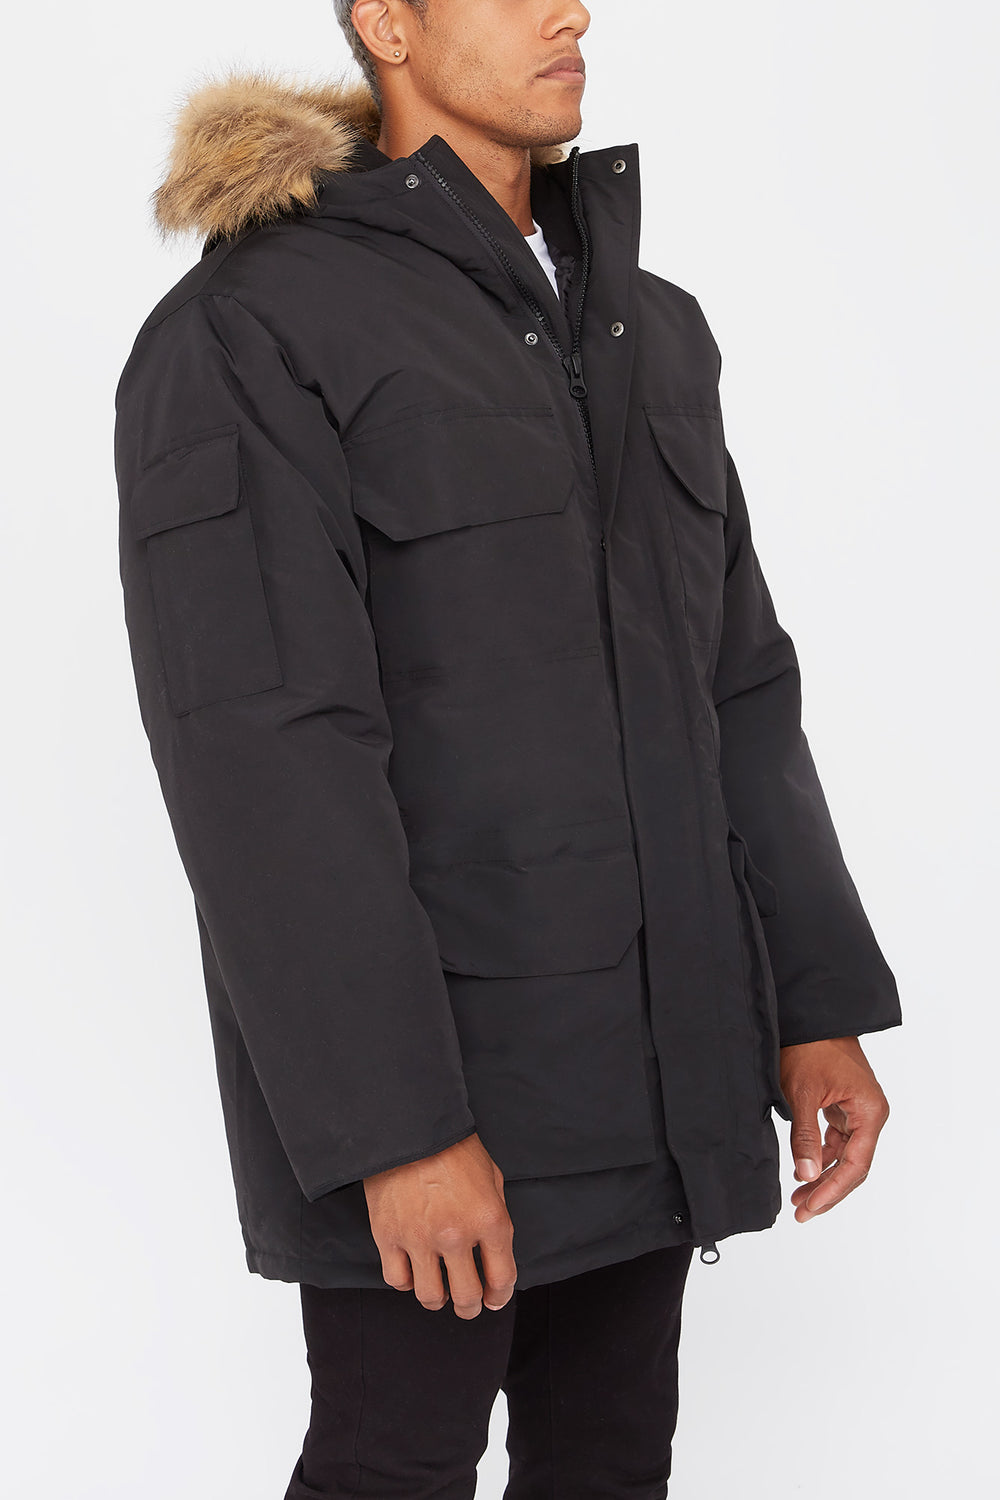 West49 Mens Parka Black